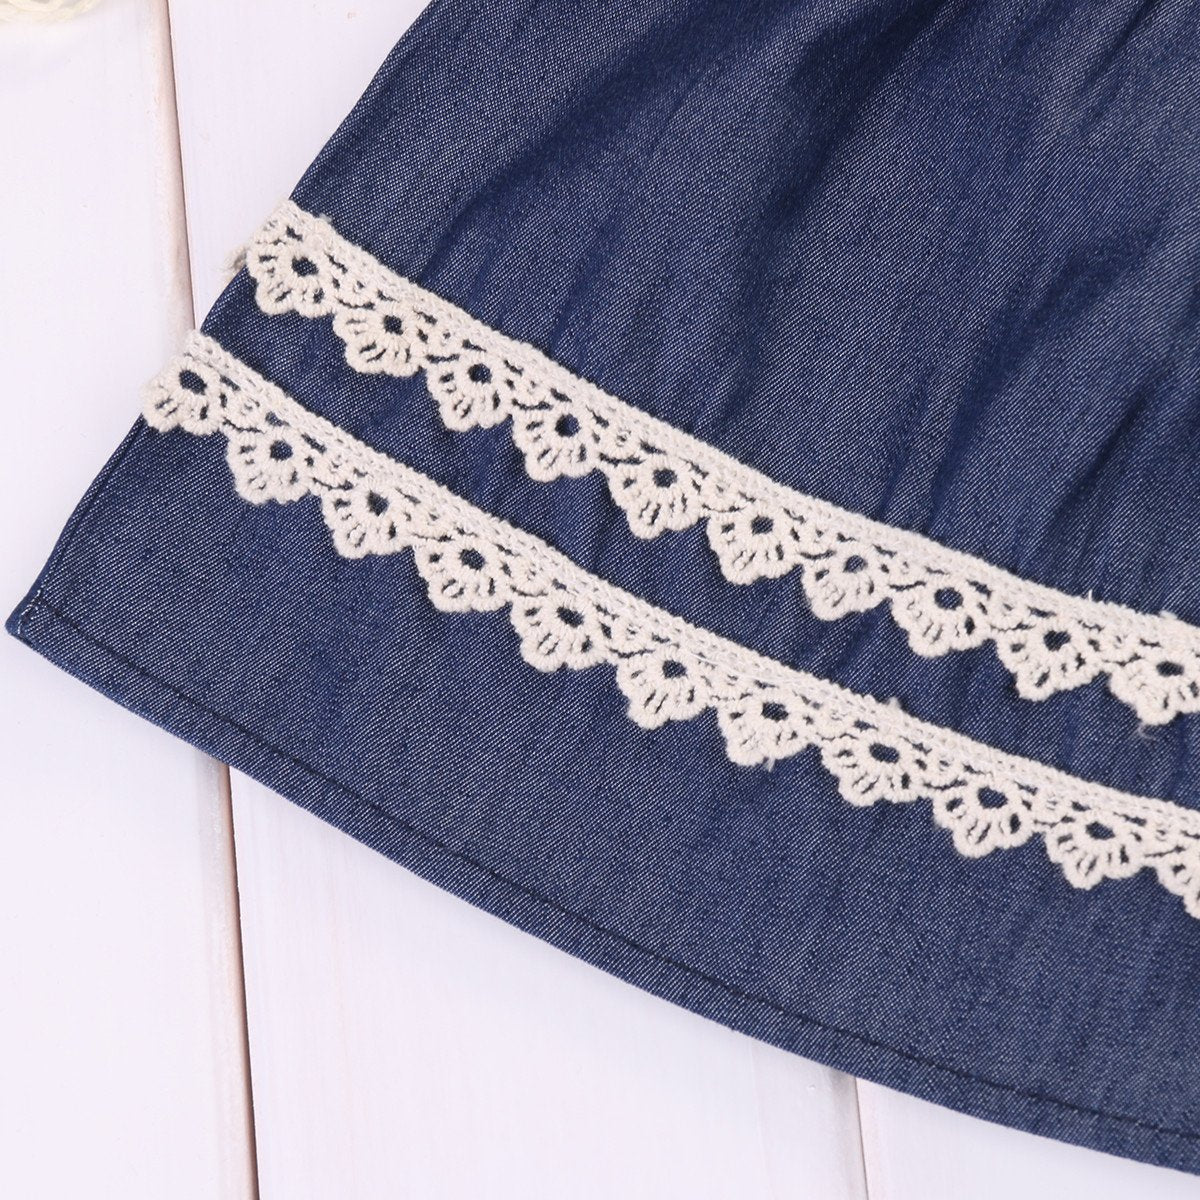 Denim and Lace - Darling Little One